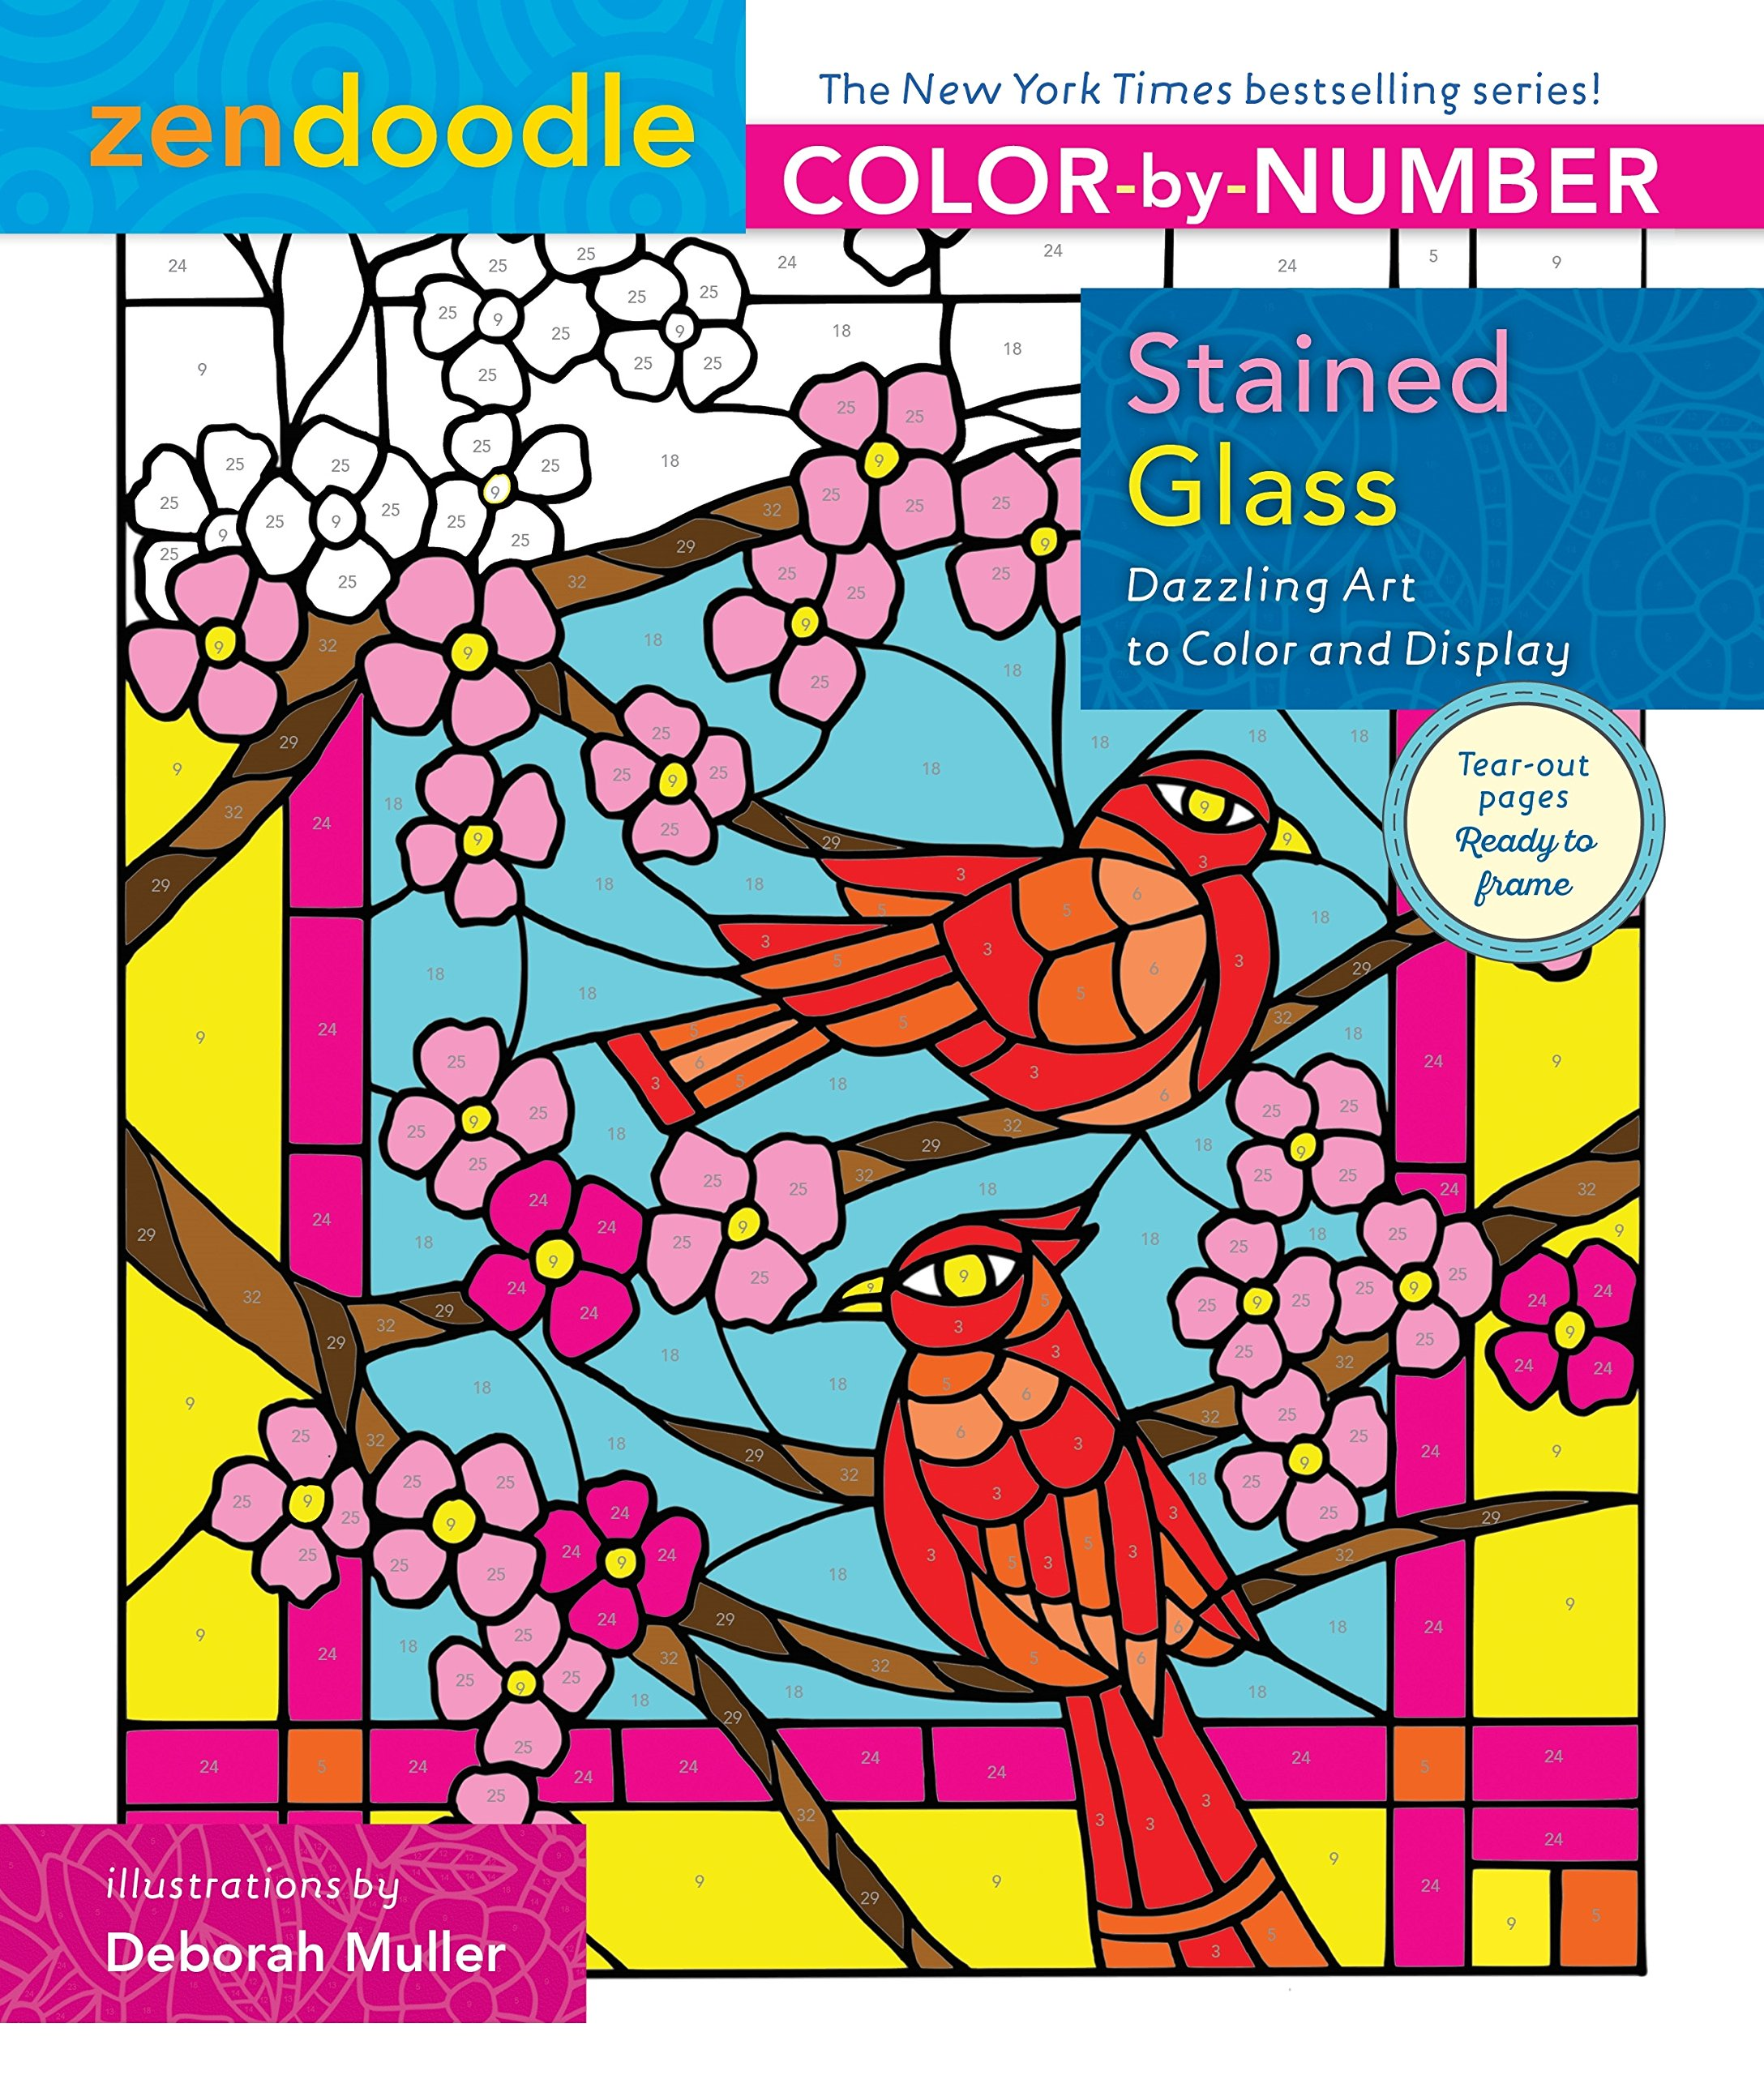 Amazon.com: Zendoodle Color-by-Number: Stained Glass: Dazzling Art ...